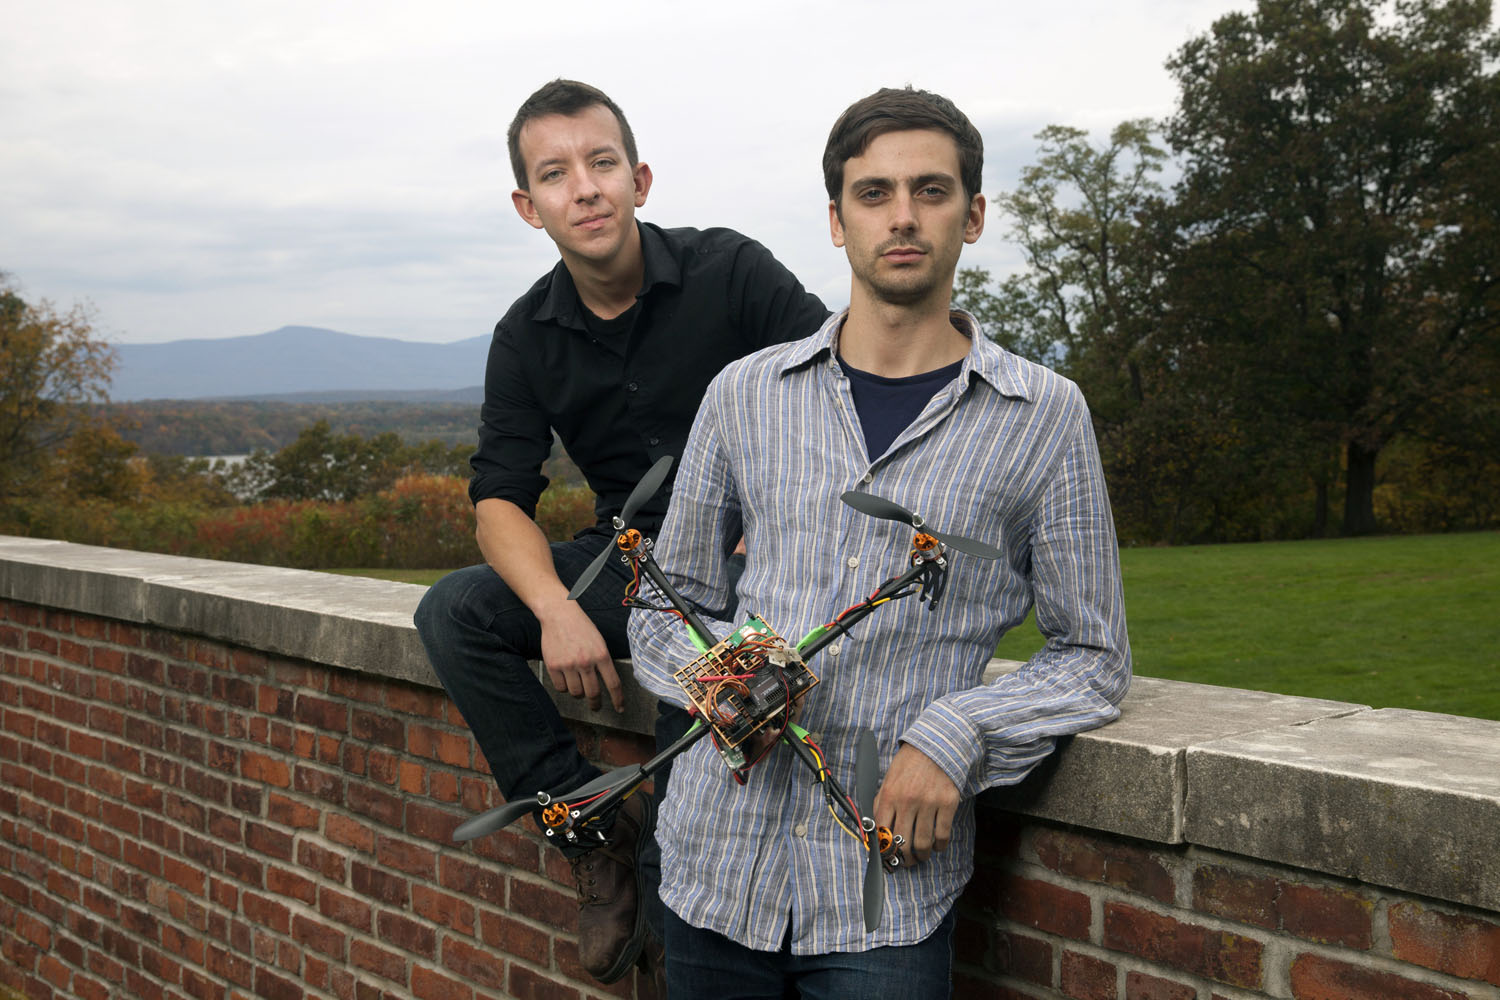 Dan Gettinger '13 (left) and Arthur Holland Michel '13, holding astudent-built drone.